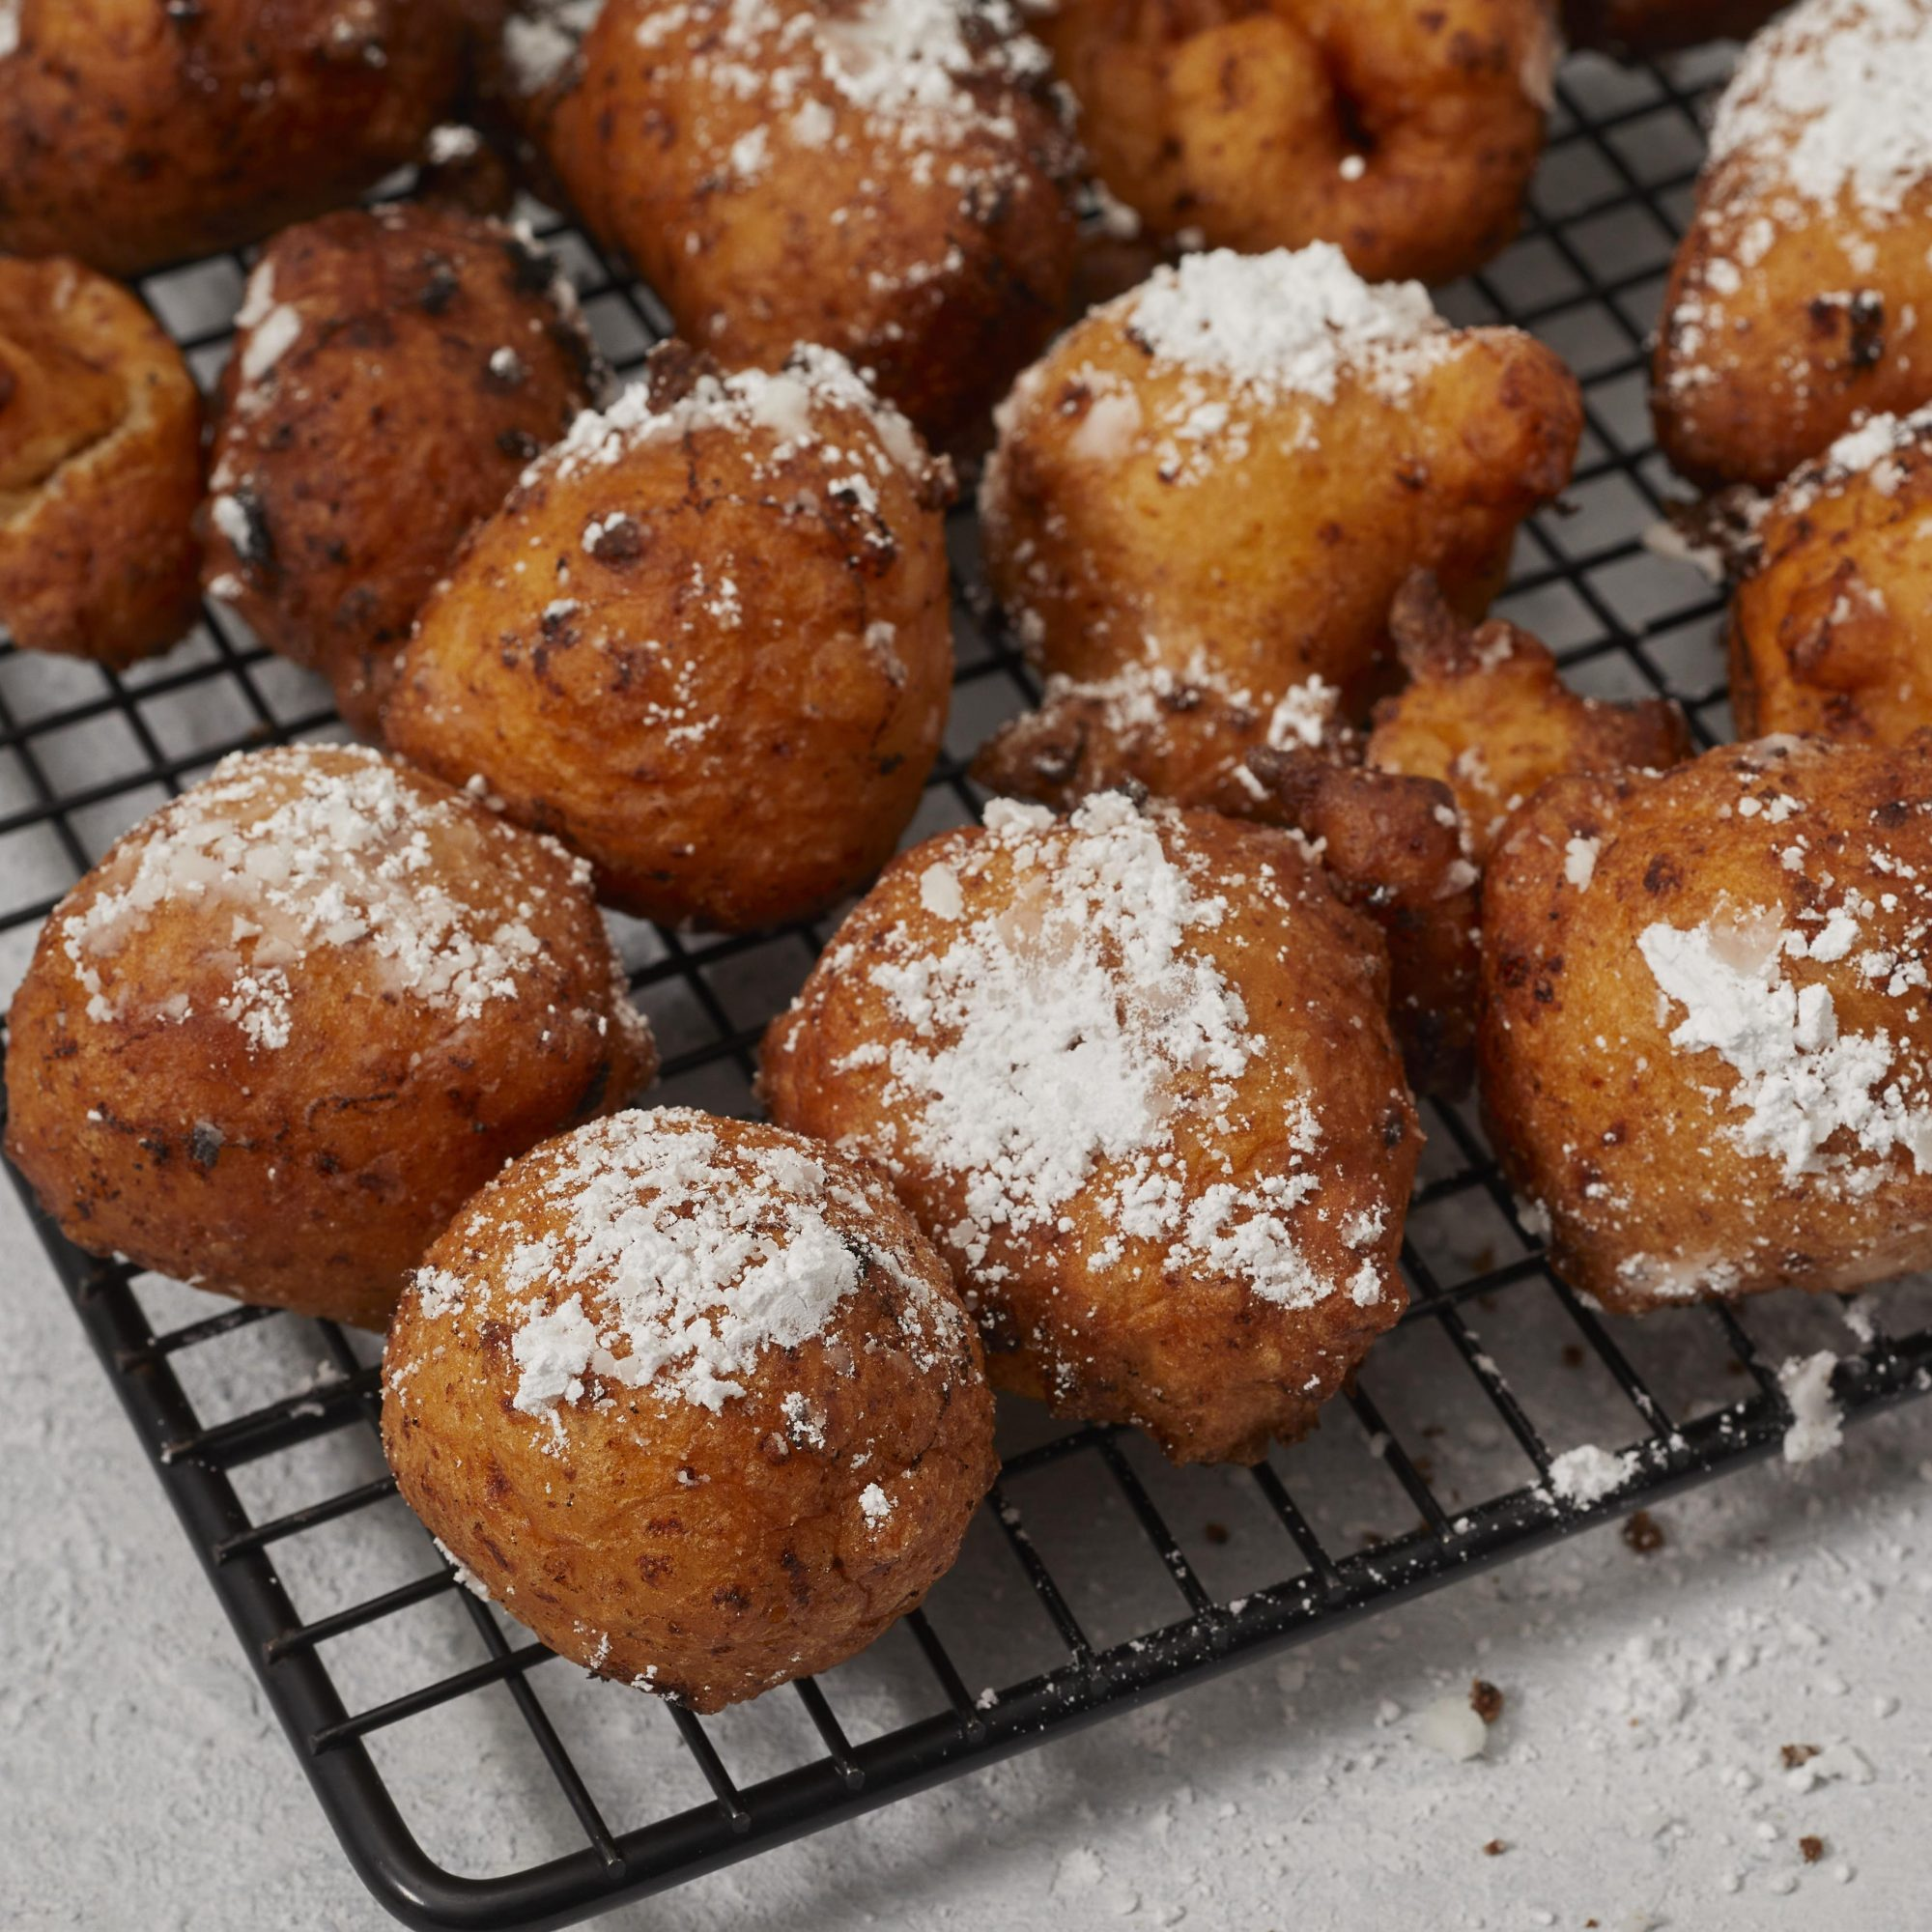 Cheese fritters on a cooling rack, dusted with confectioners' sugar